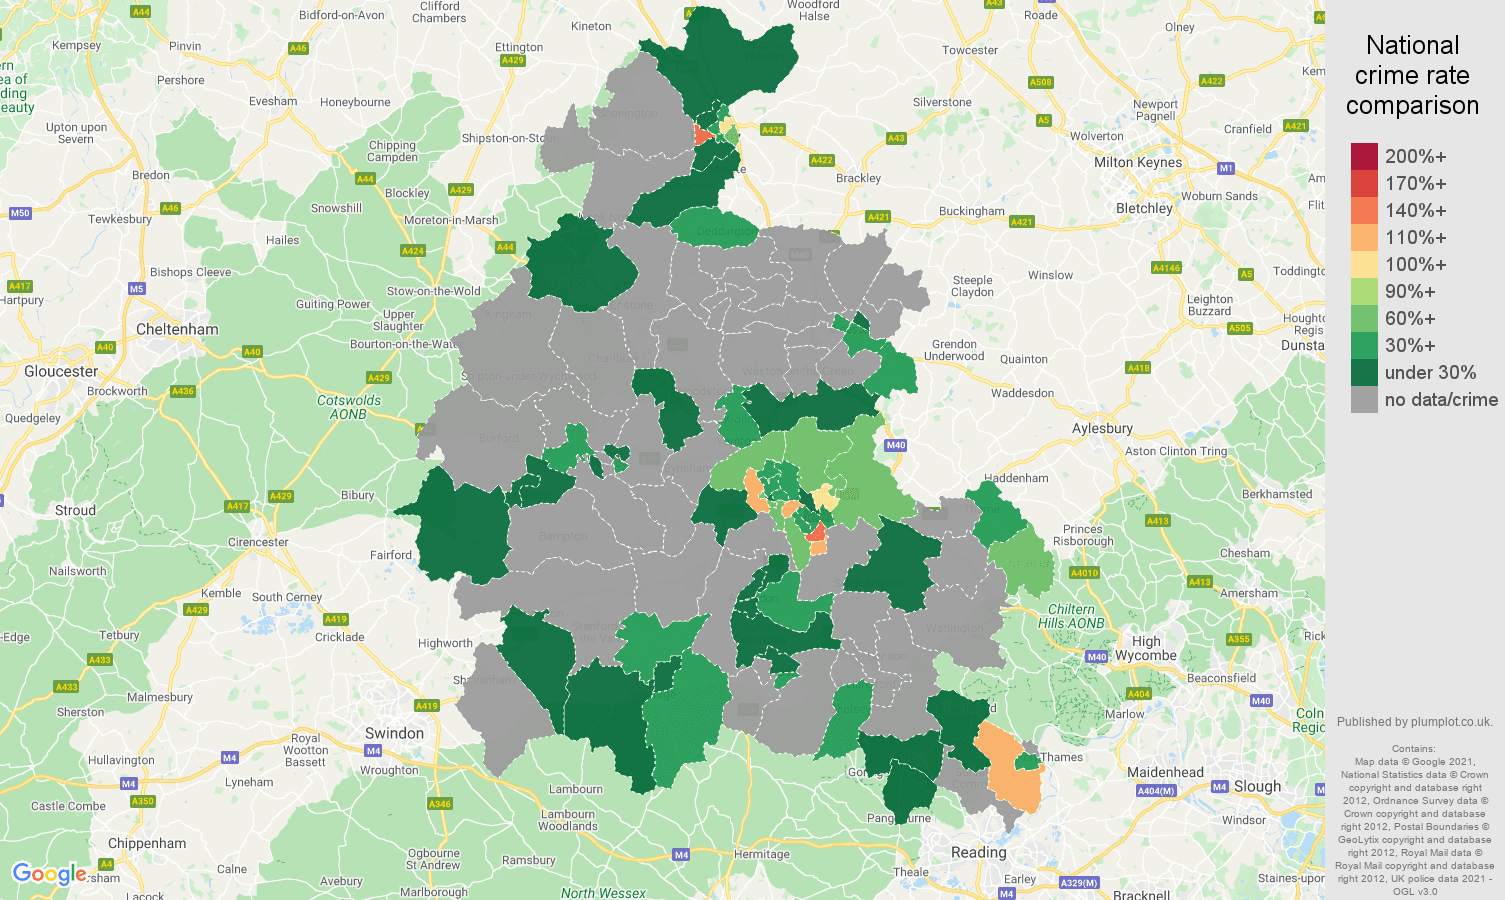 Oxfordshire robbery crime rate comparison map